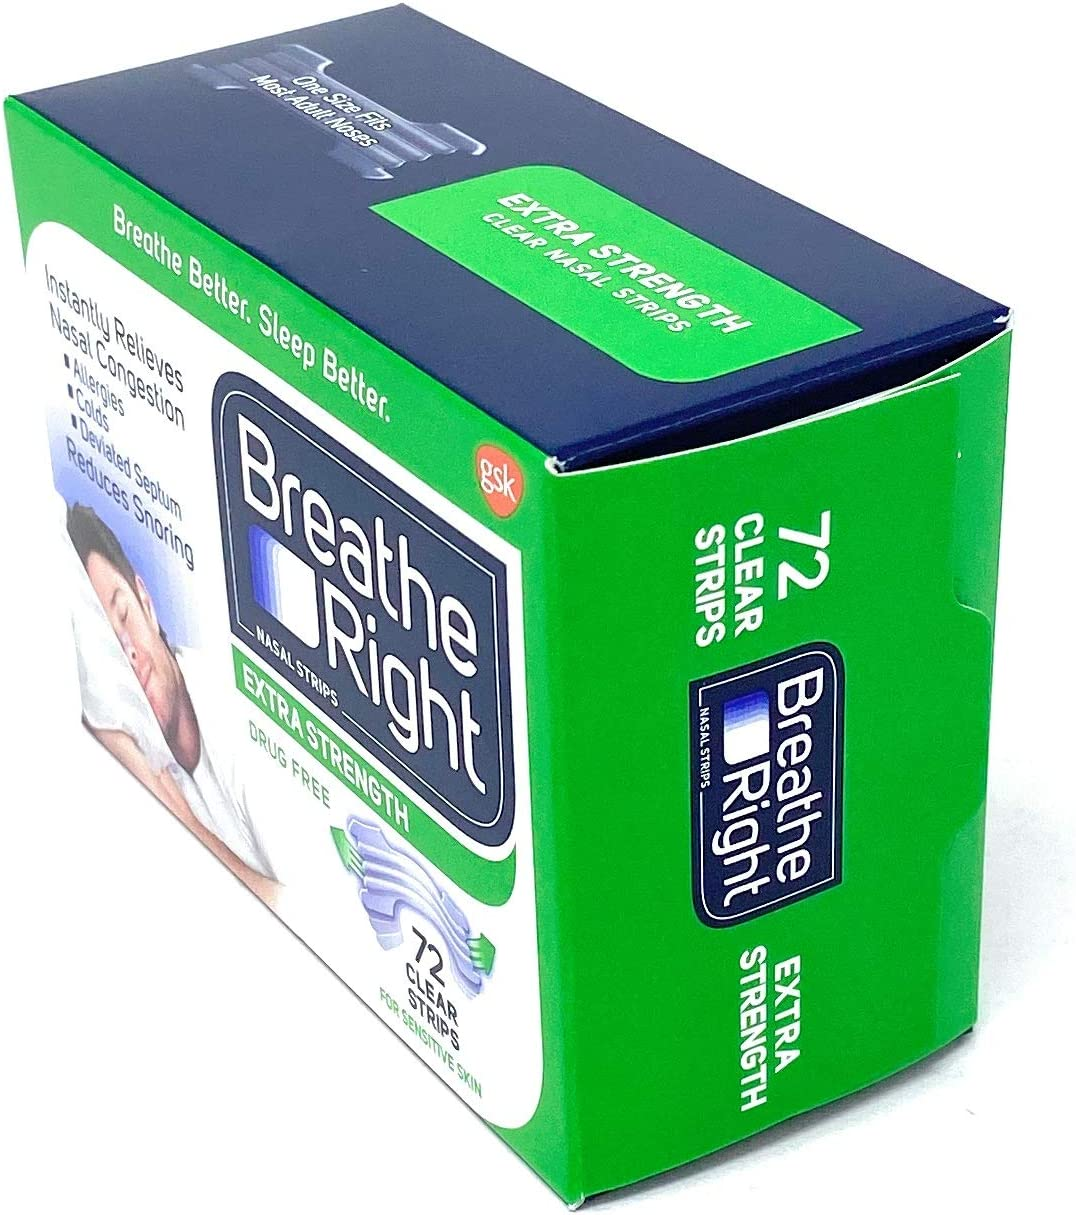 Breathe Right Nasal Strips, Extra Clear for Sensitive Skin, 72 Clear Strips: Health & Personal Care